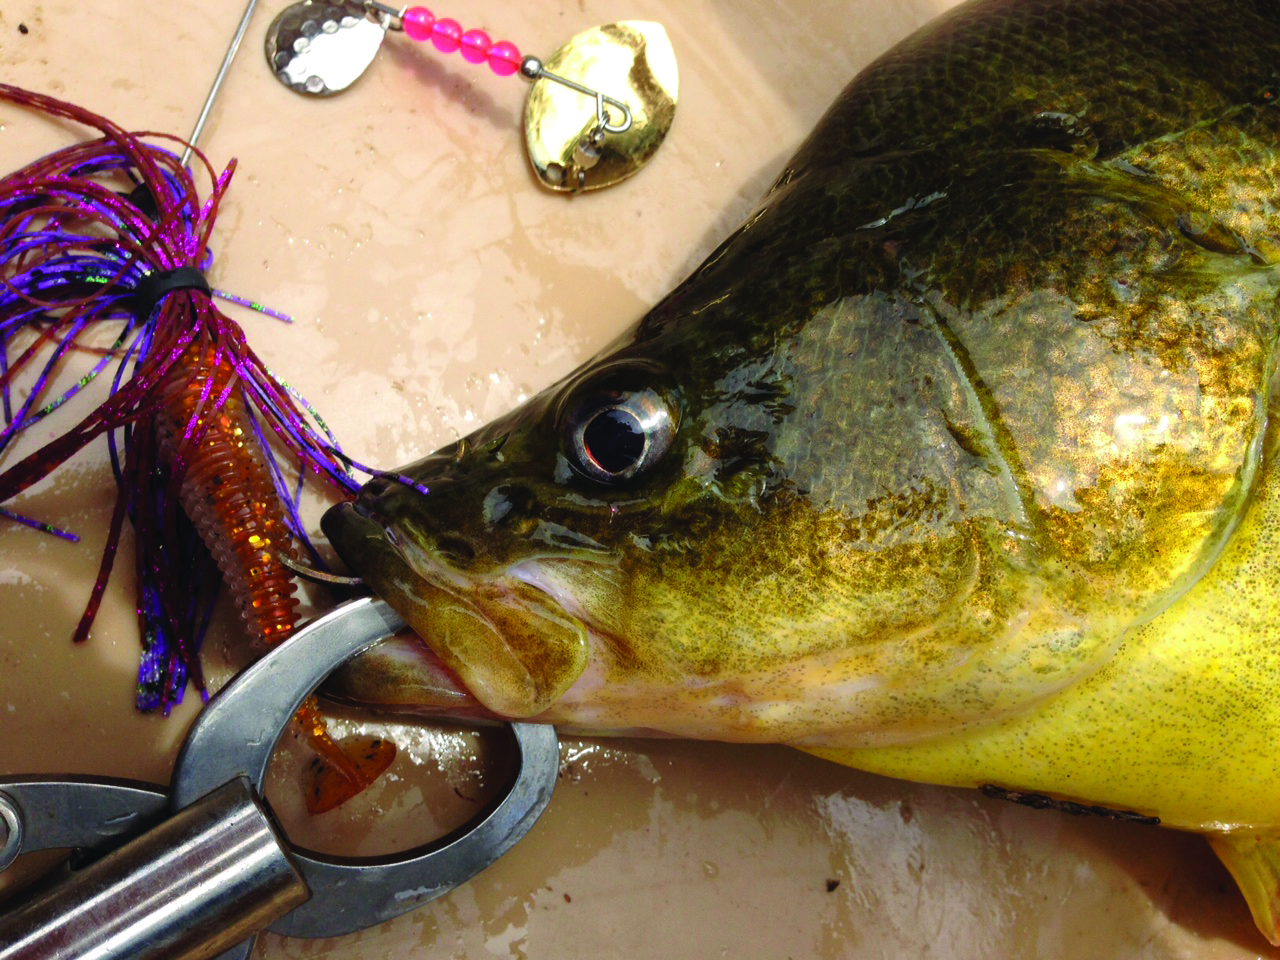 Cod Hound Spinnerbaits have proved very effective on golden perch.